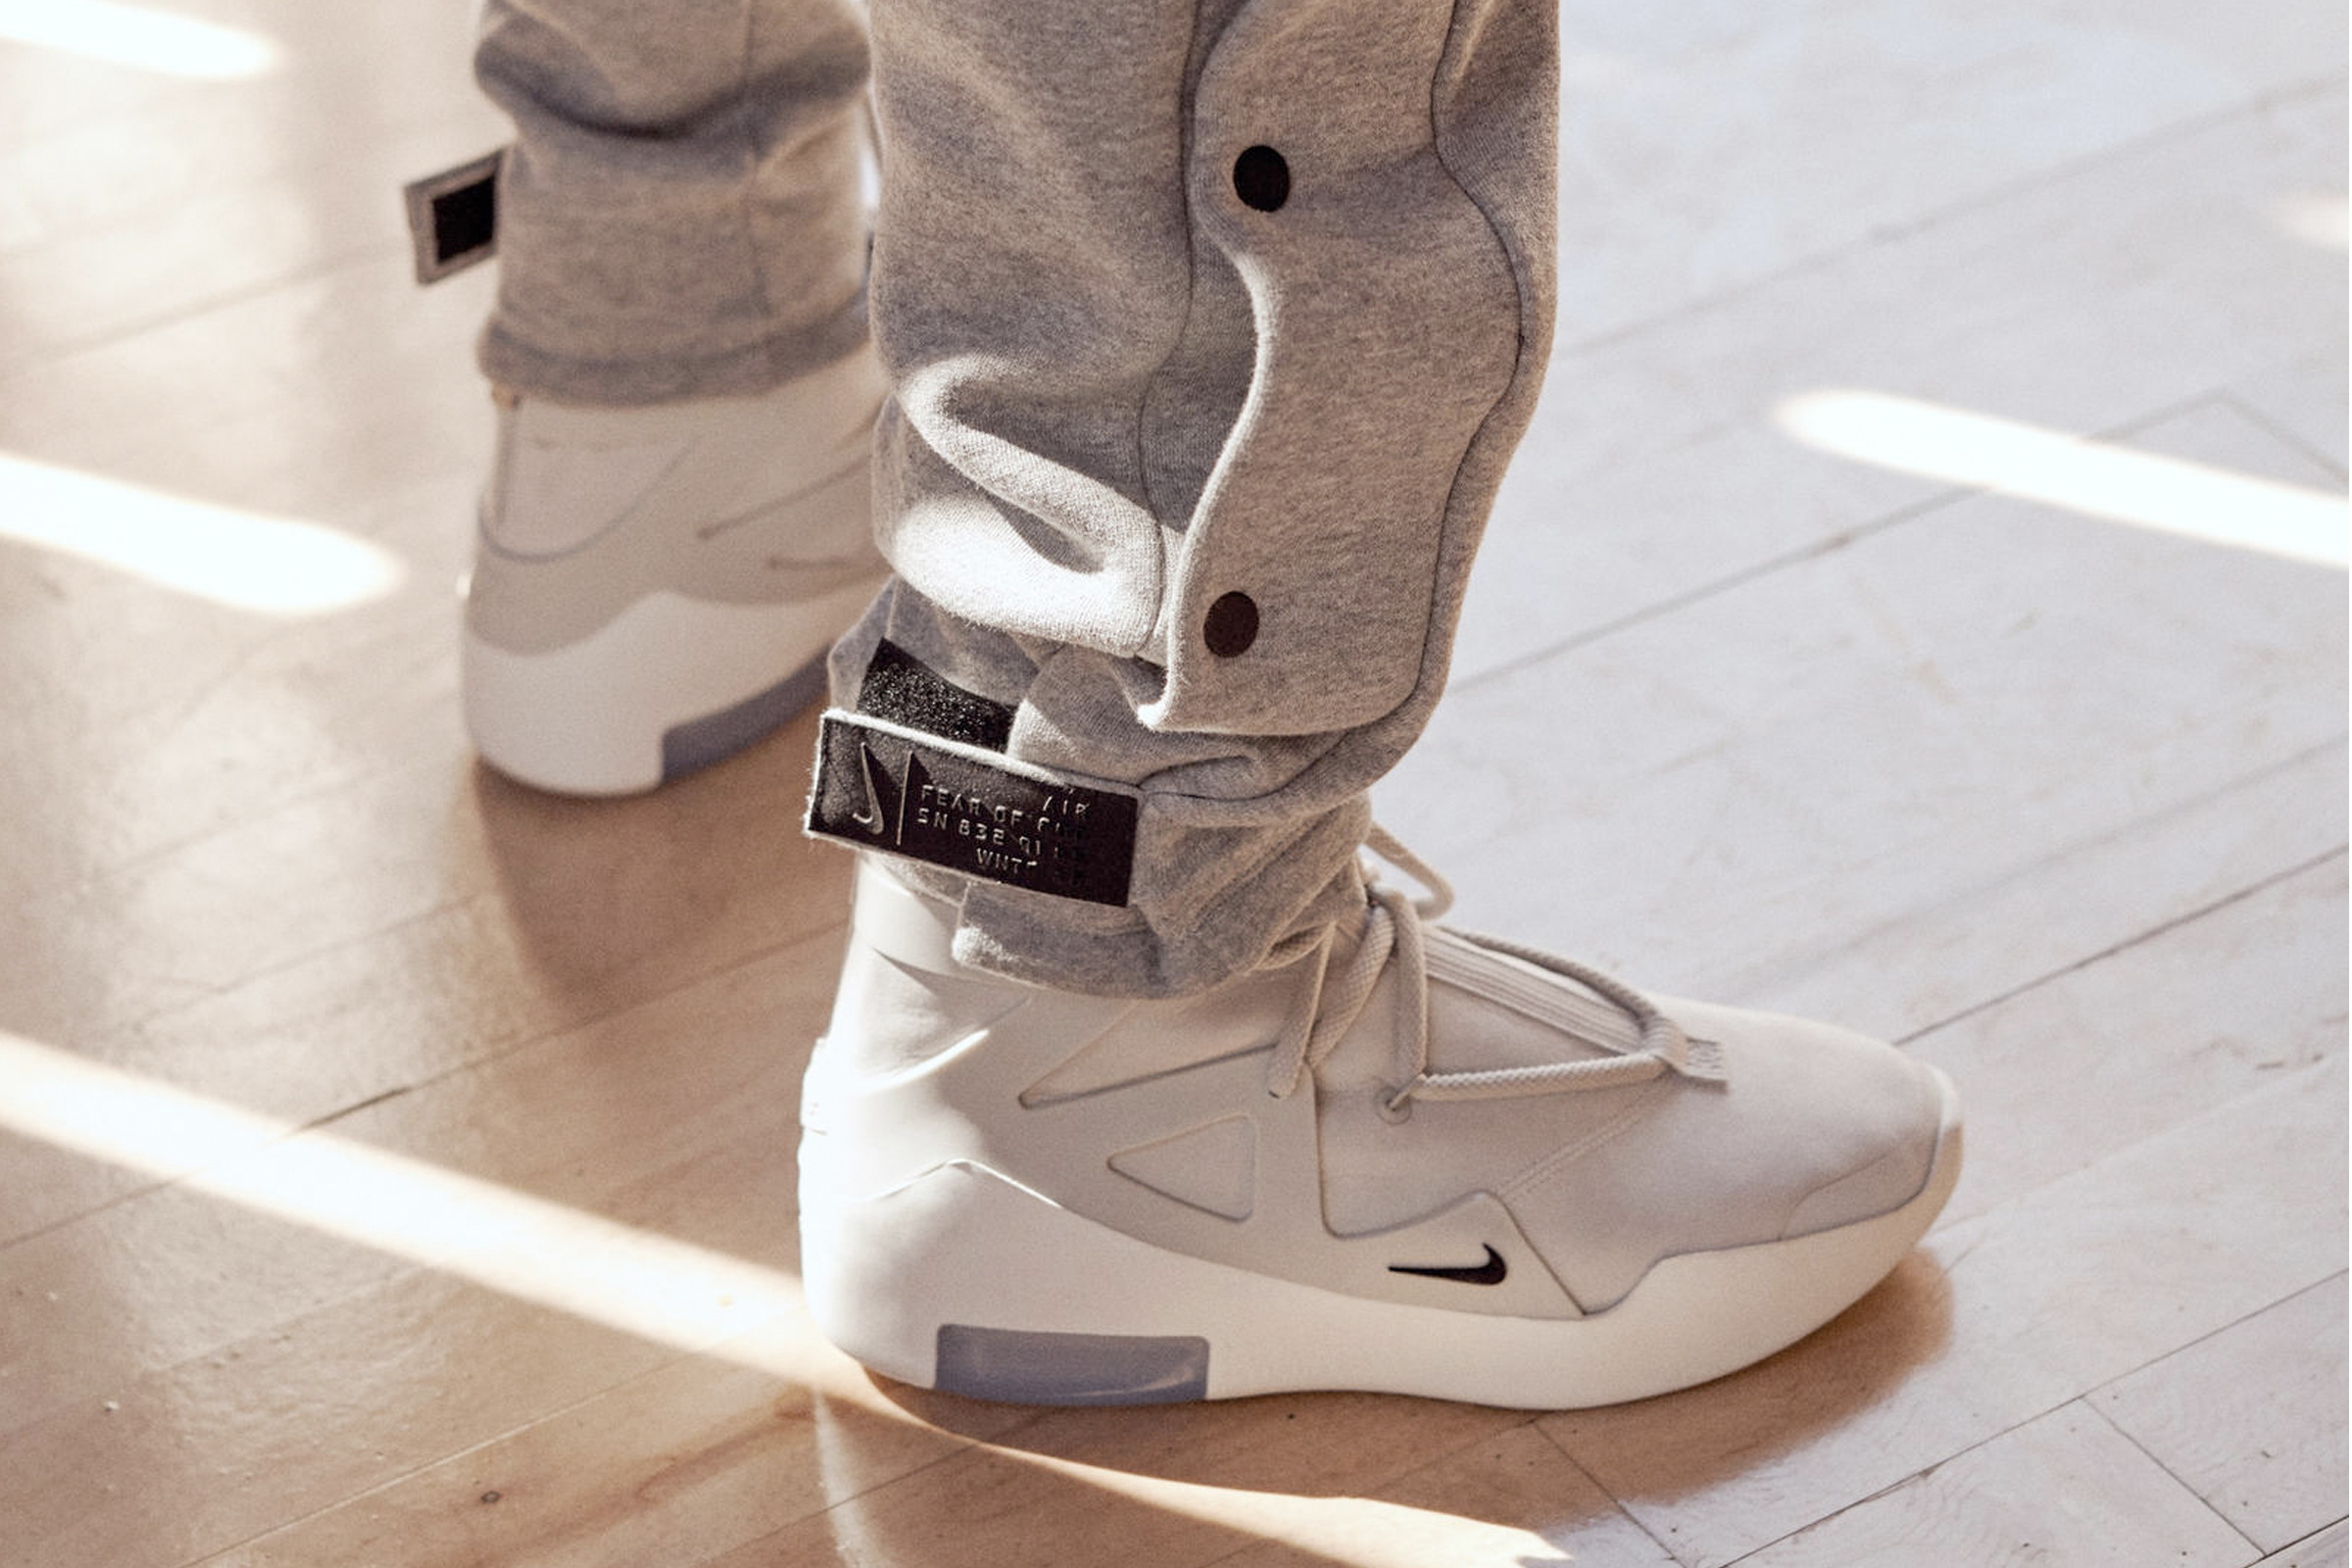 the best attitude d7dc6 66a0c Just In  The Nike Air Fear of God Collection Drops December 15 - Nike Air  Fear Of God Release Info   Grailed